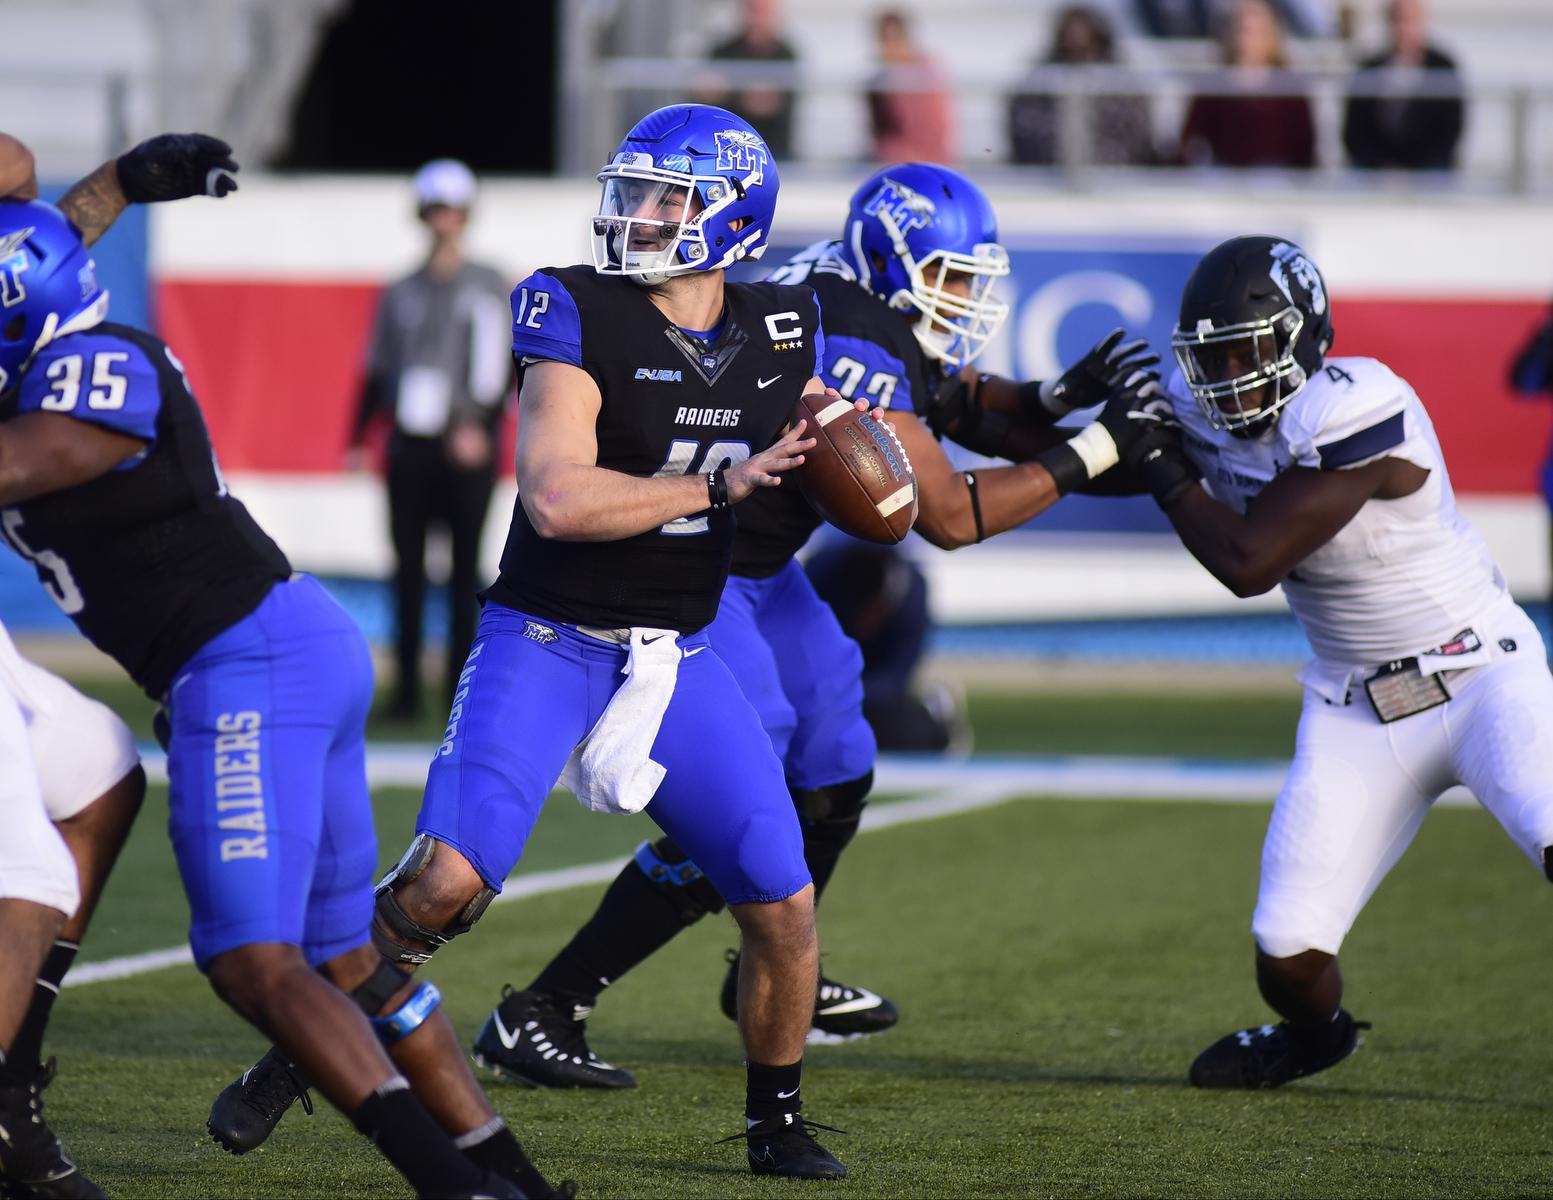 Middle Tennessee tops Arkansas State 35-30 in Camellia Bowl